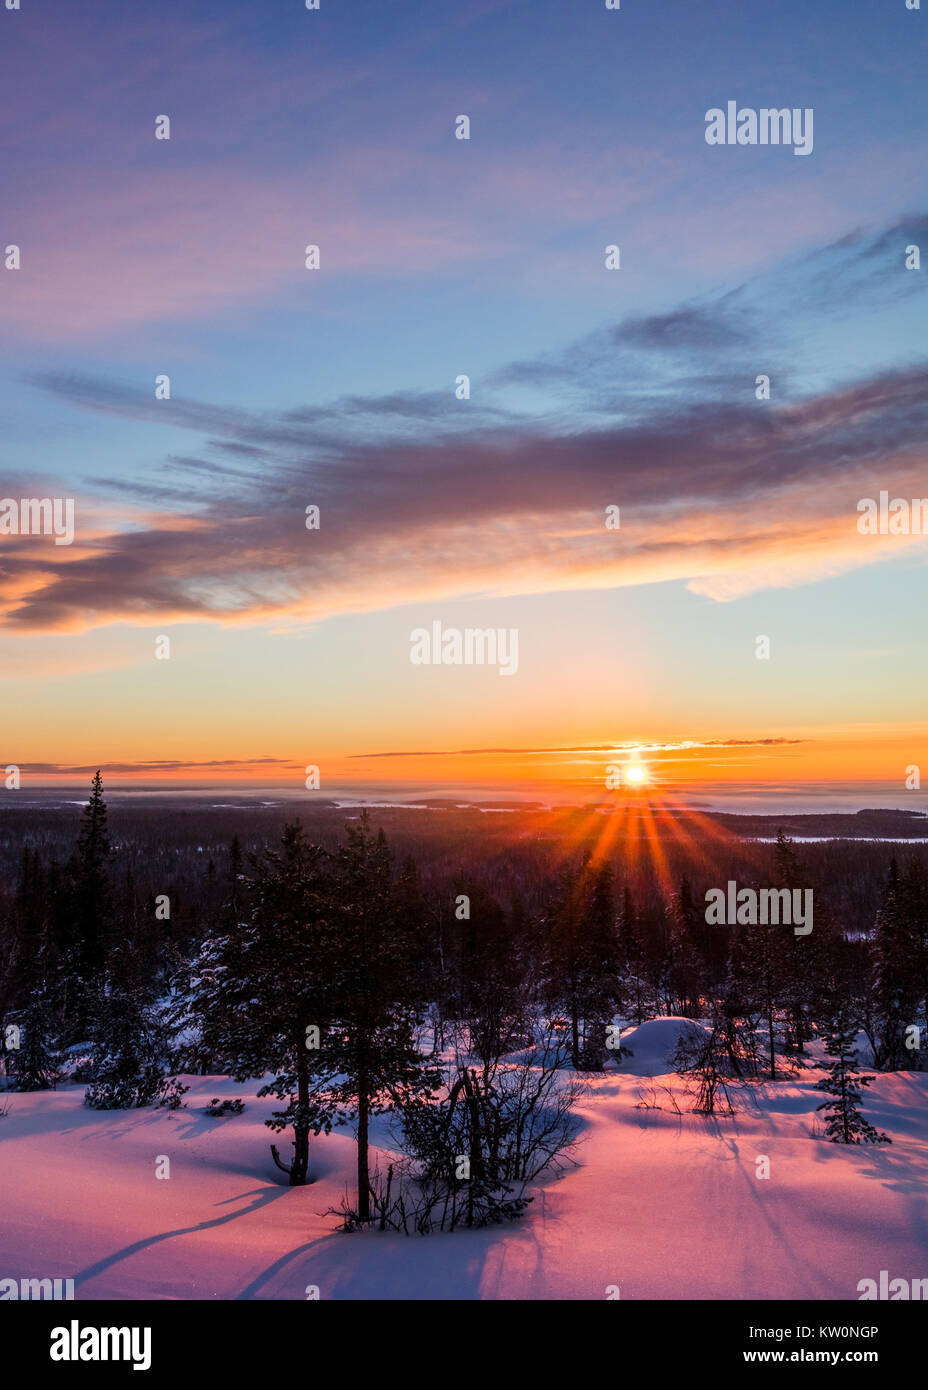 Winter sunrise in Finland - Stock Image